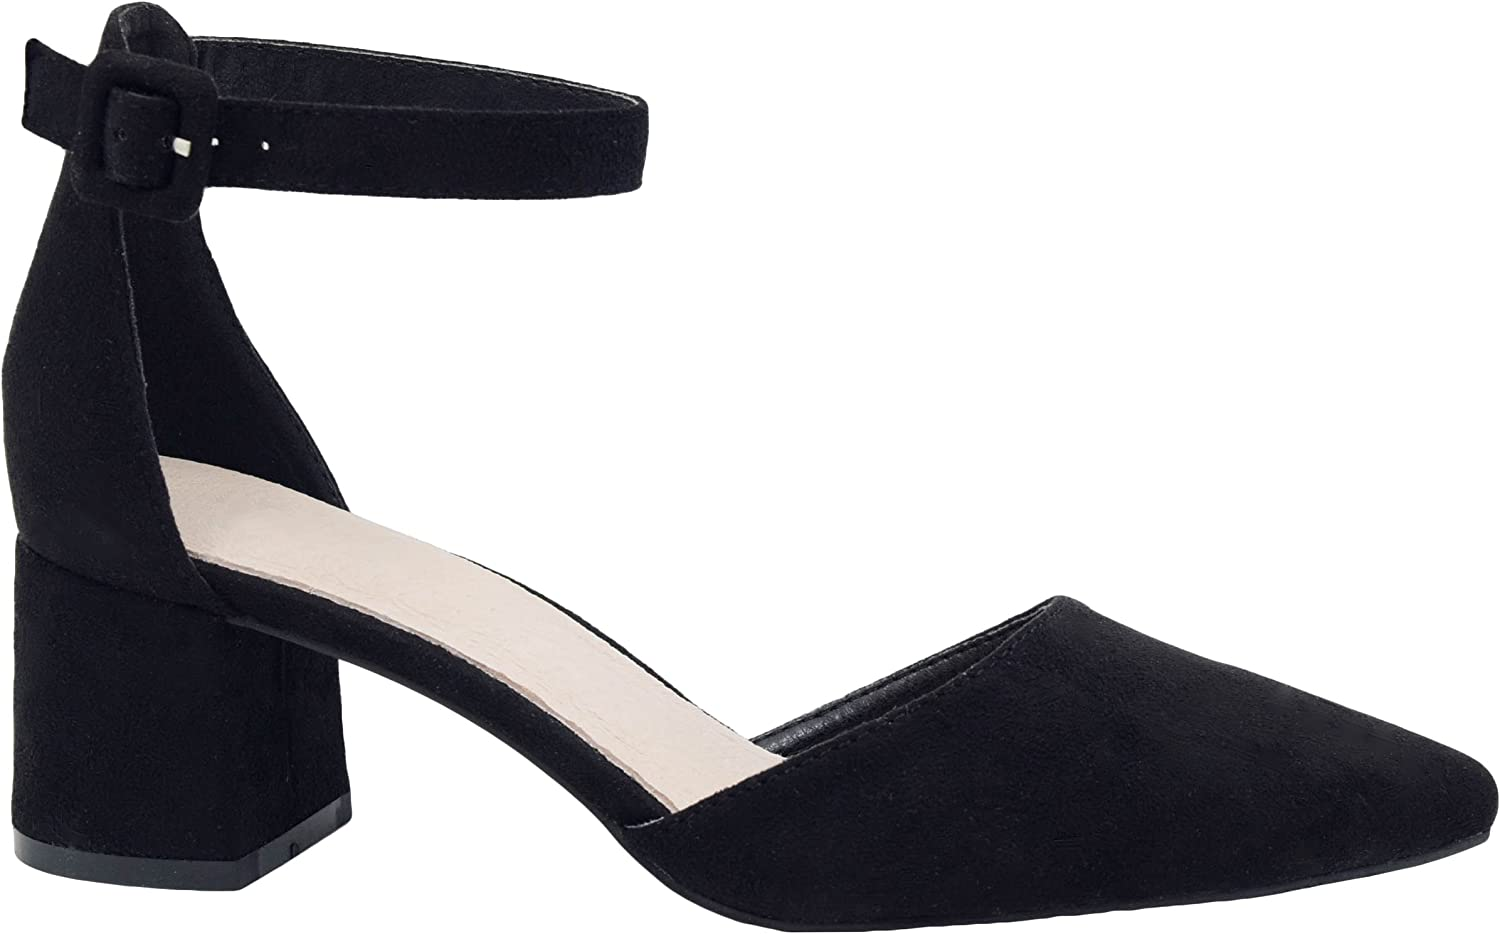 Greatonu Ankle Strappy Buckled Party